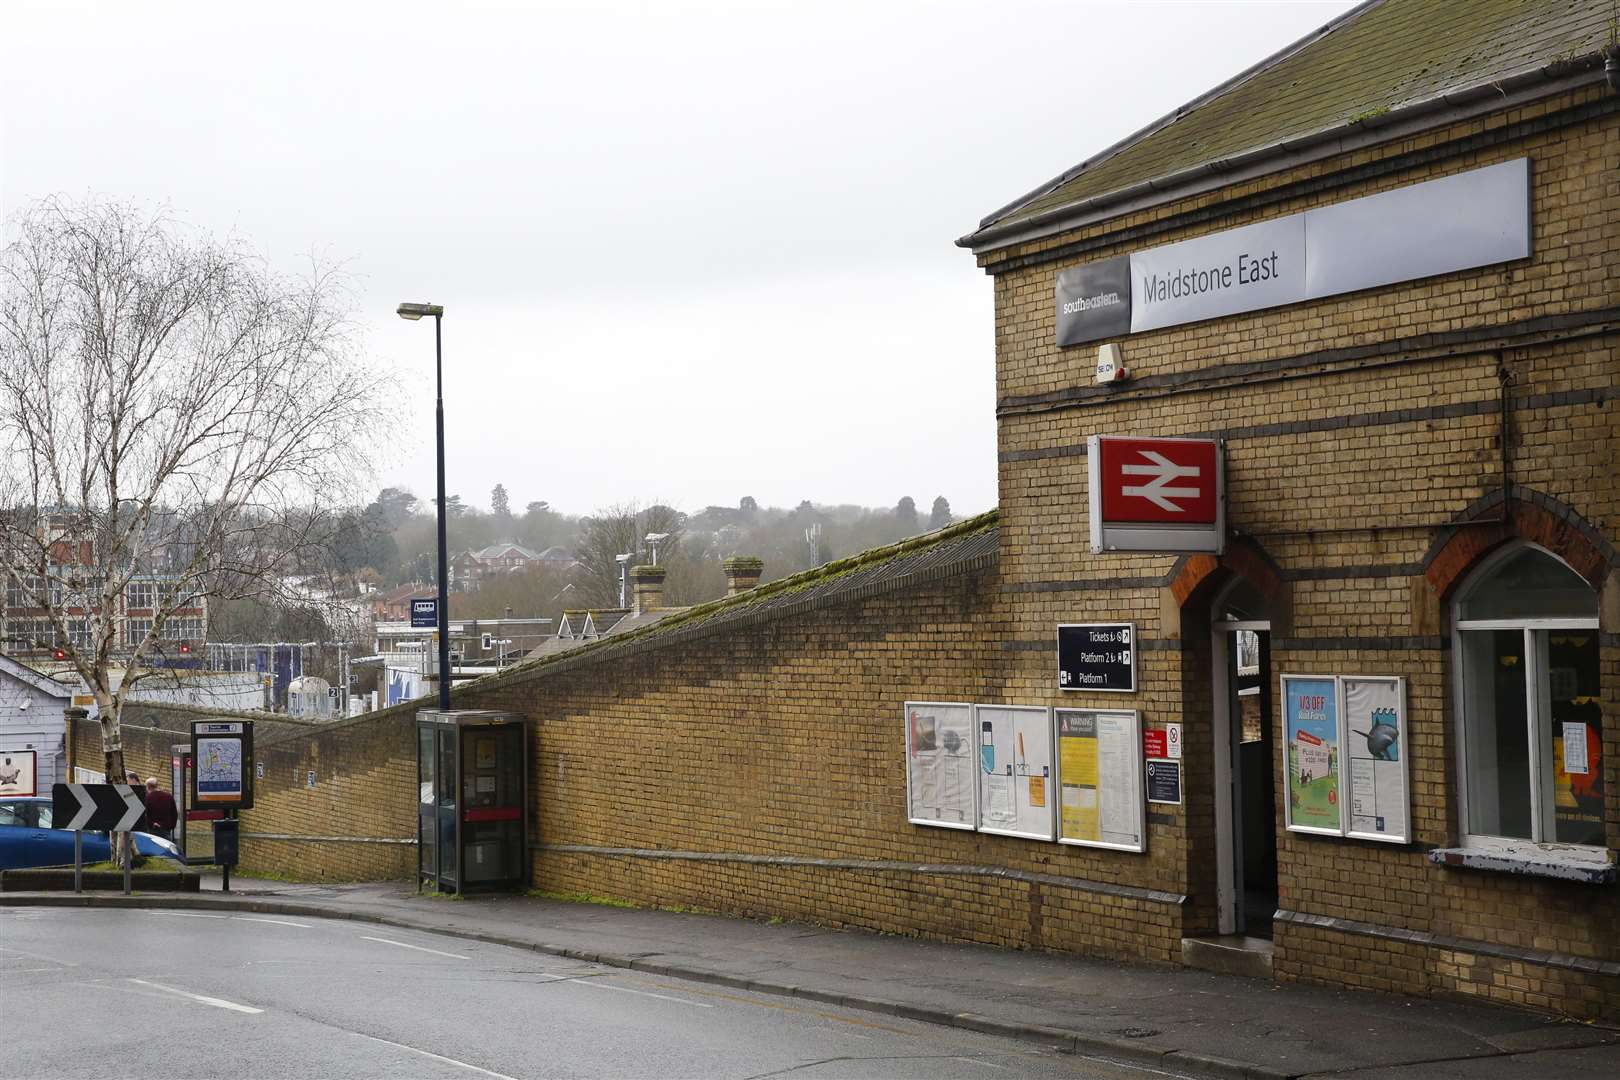 Maidstone East station will benefit from improved rail links, insists transport secretary Chris Grayling. Picture: Martin Apps